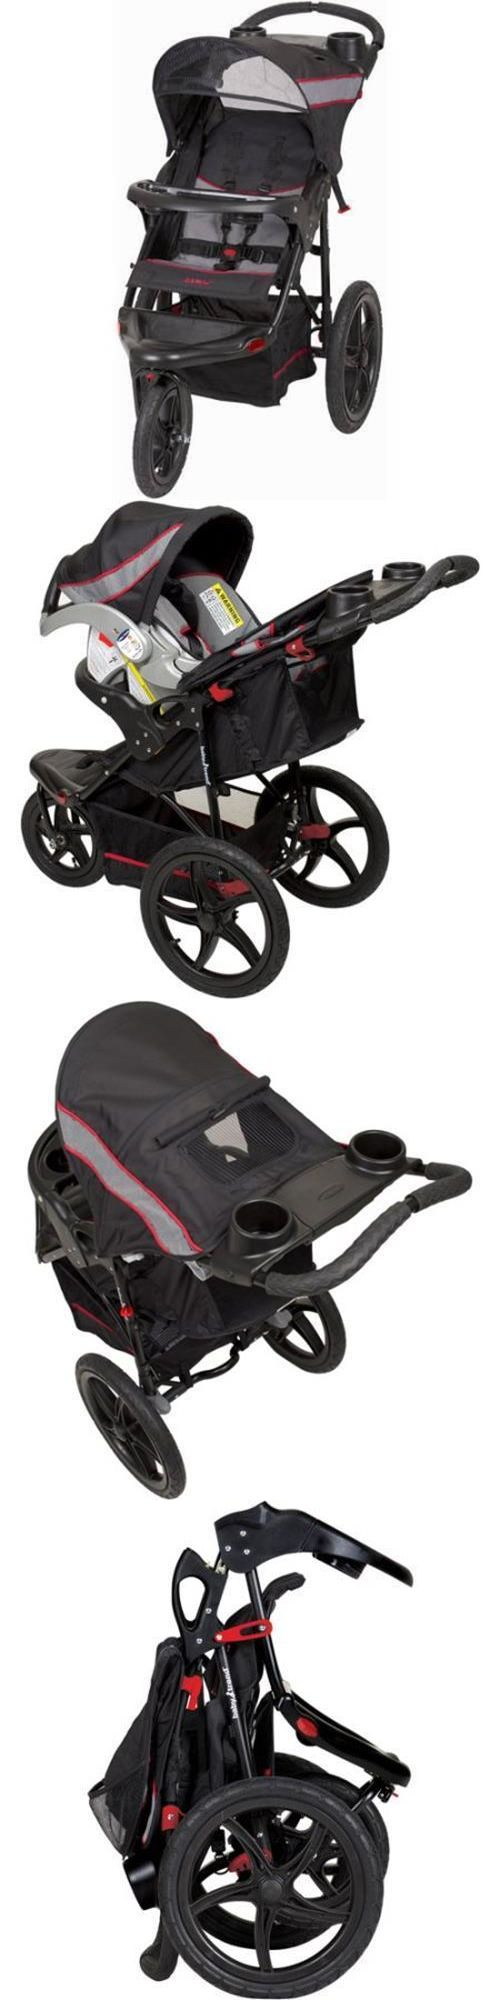 baby kid stuff: Baby Trend Expedition Swivel Stroller Jogger Baby Jogging Stroller *New* -> BUY IT NOW ONLY: $88.95 on eBay!